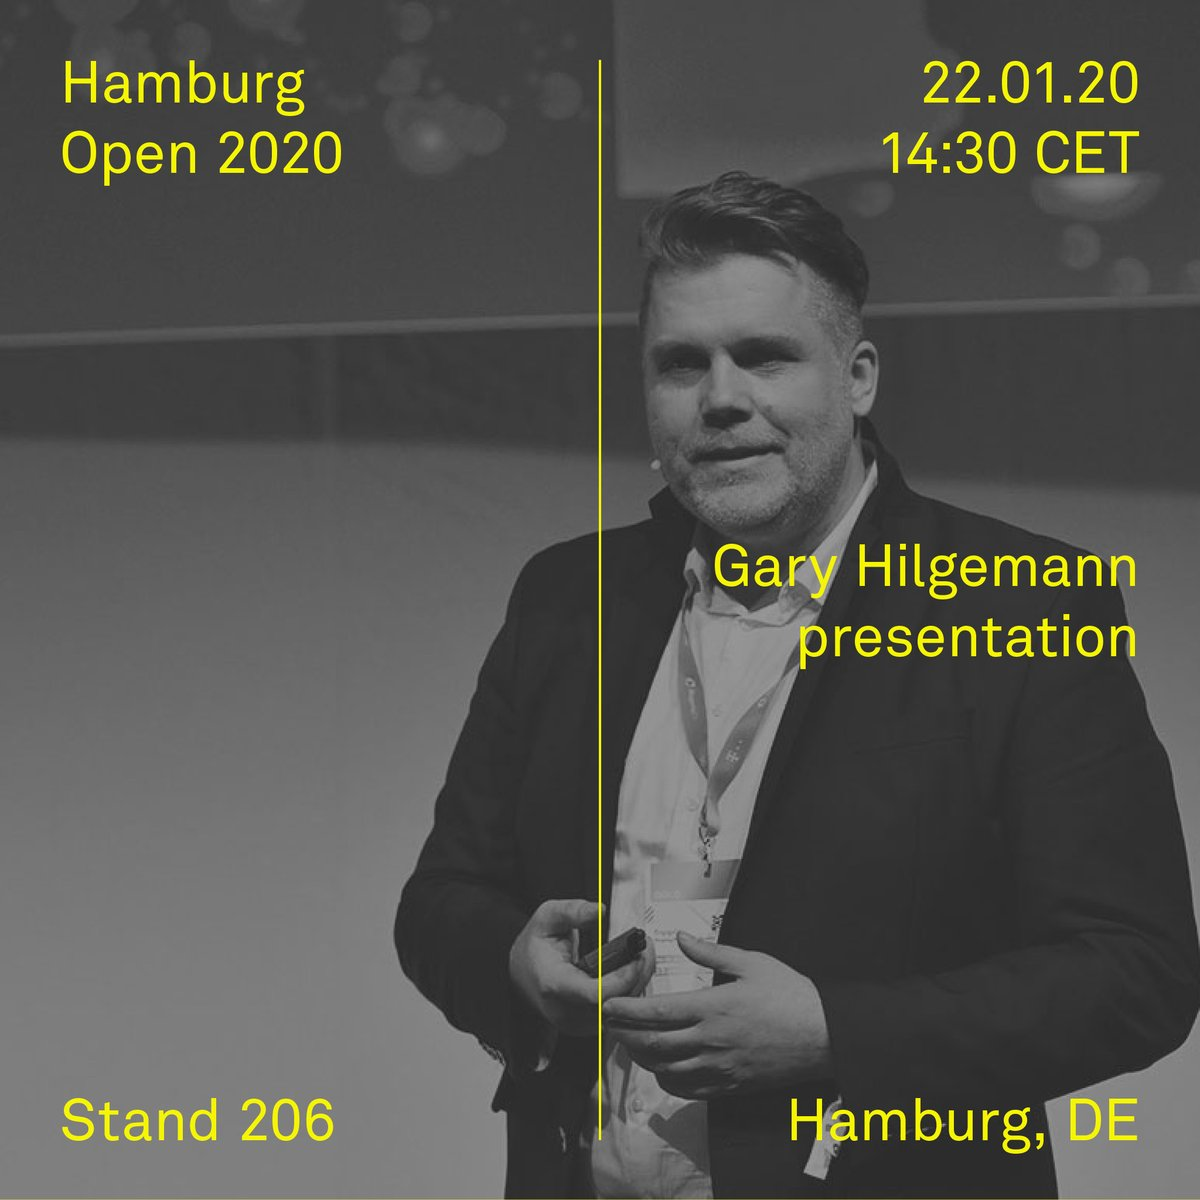 test Twitter Media - We're delighted to present 'AI in real life' a presentation with Gary Hilgemann from Rebotnix technologies, today at the Hamburg Open from 14:30 CET at our stand 206. #elements #garyhilgemann #ai #artificialintelligence #hamburgopen #hamburgopen2020 https://t.co/NvX7OpAh40